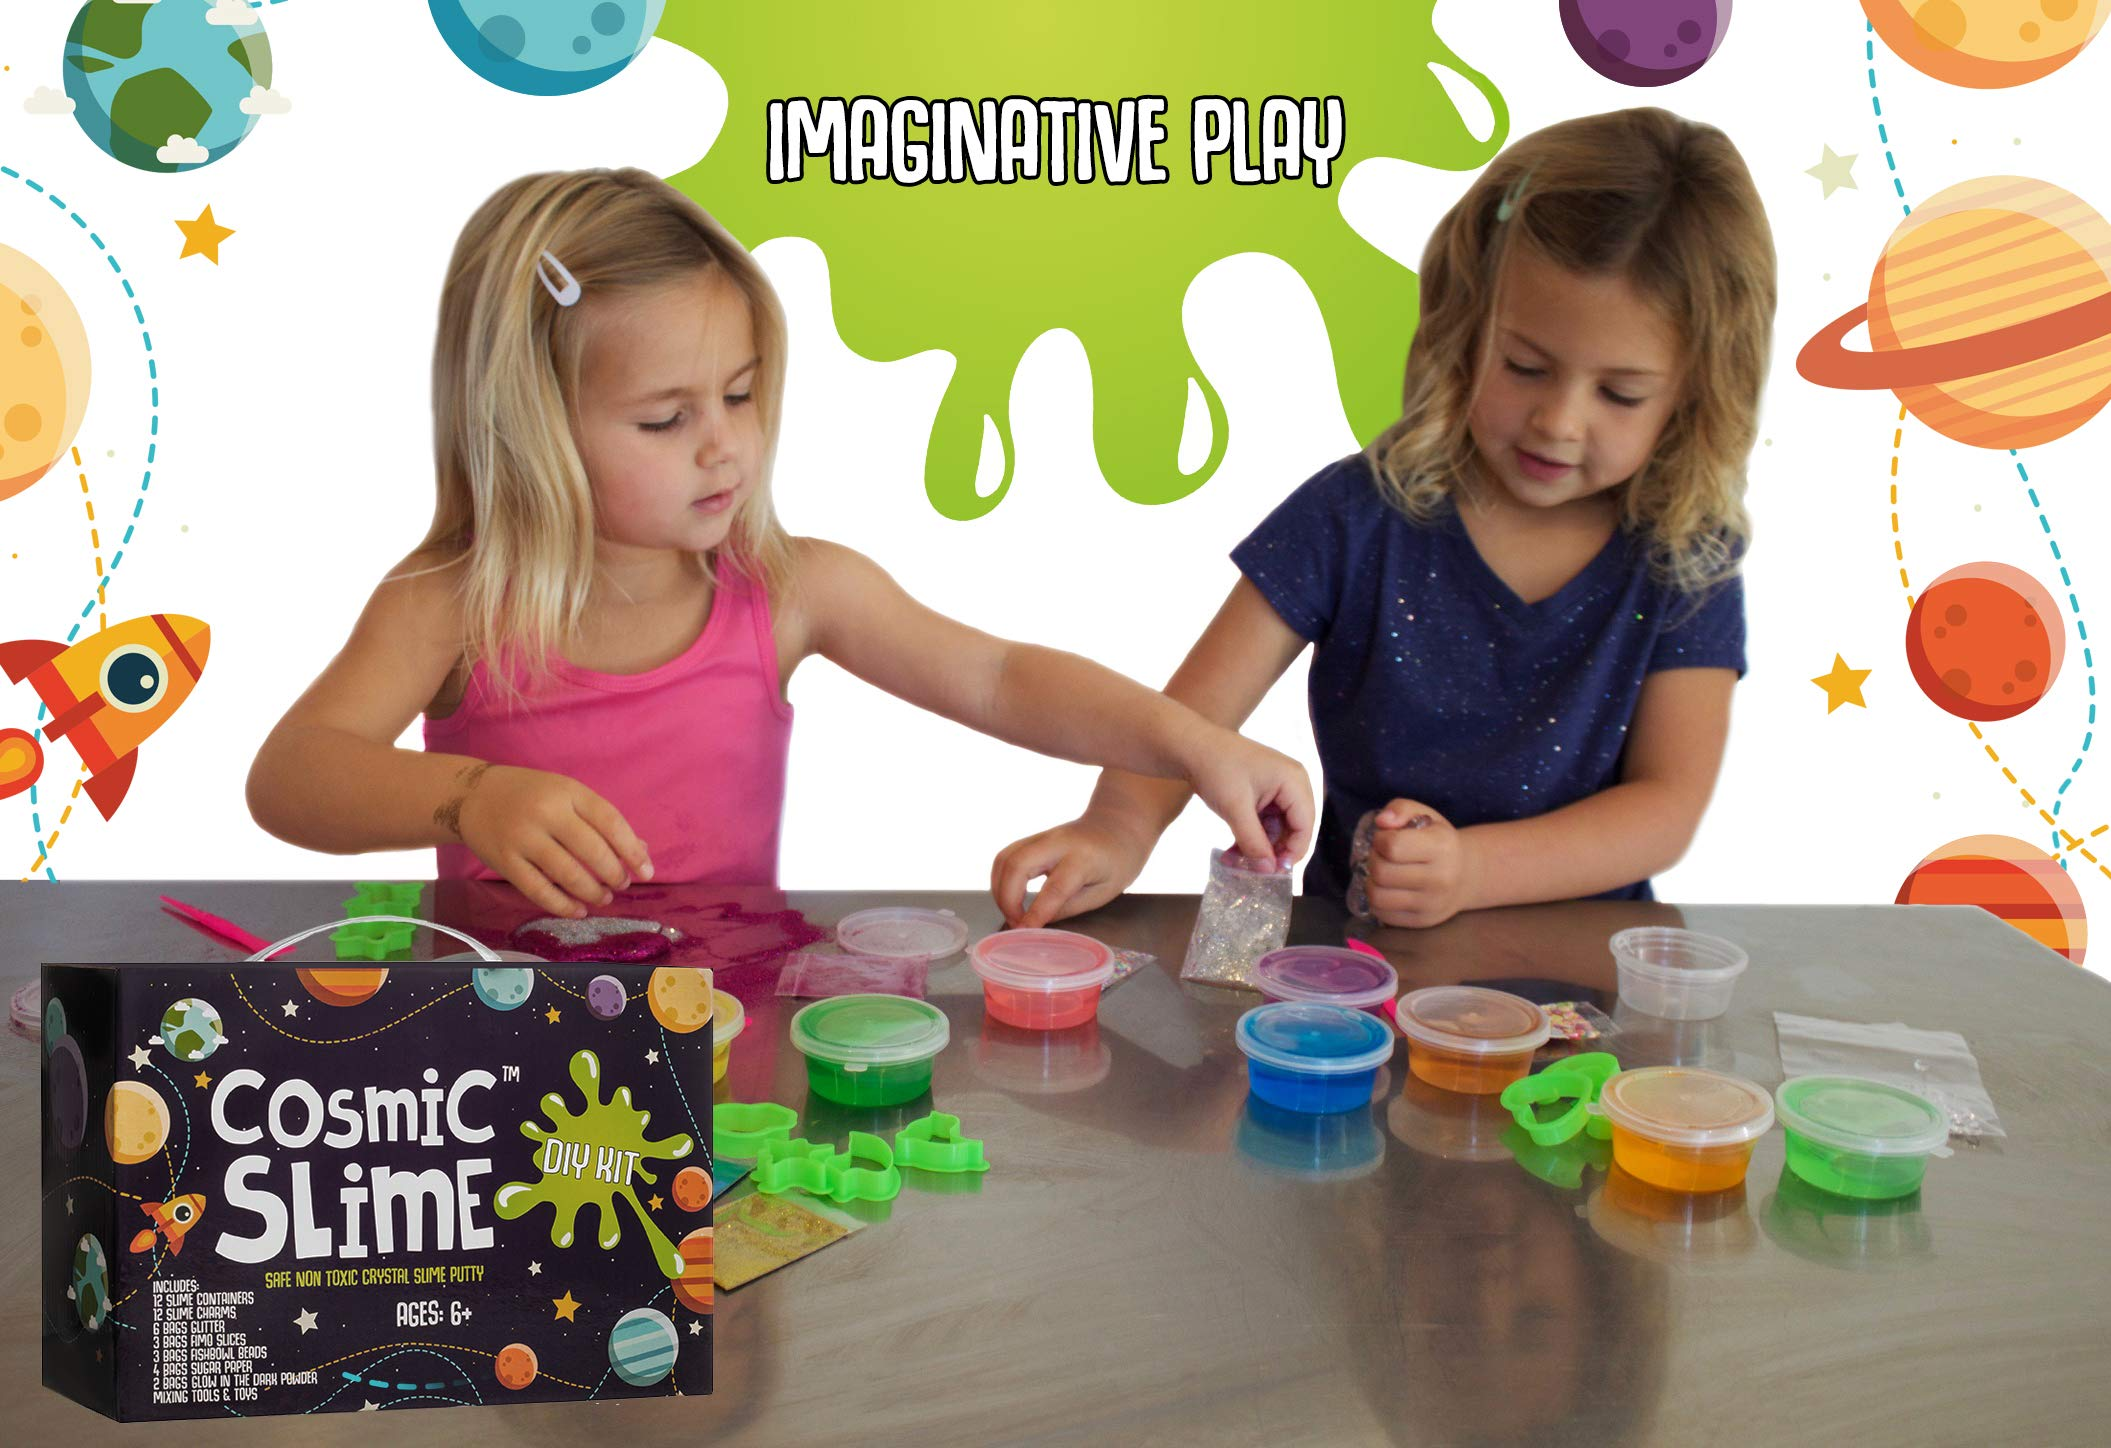 Cosmic Slime Kit - Jumbo 55 Piece Set, Slime Supplies, Make Your Own Slime Kit, Slime Charms, Non-Toxic Clear Putty, Slime Kit for Girls and Boys, Sensory Toy and Slime, Great Gift for Girls and Boys by Stardust & Jupiter (Image #7)